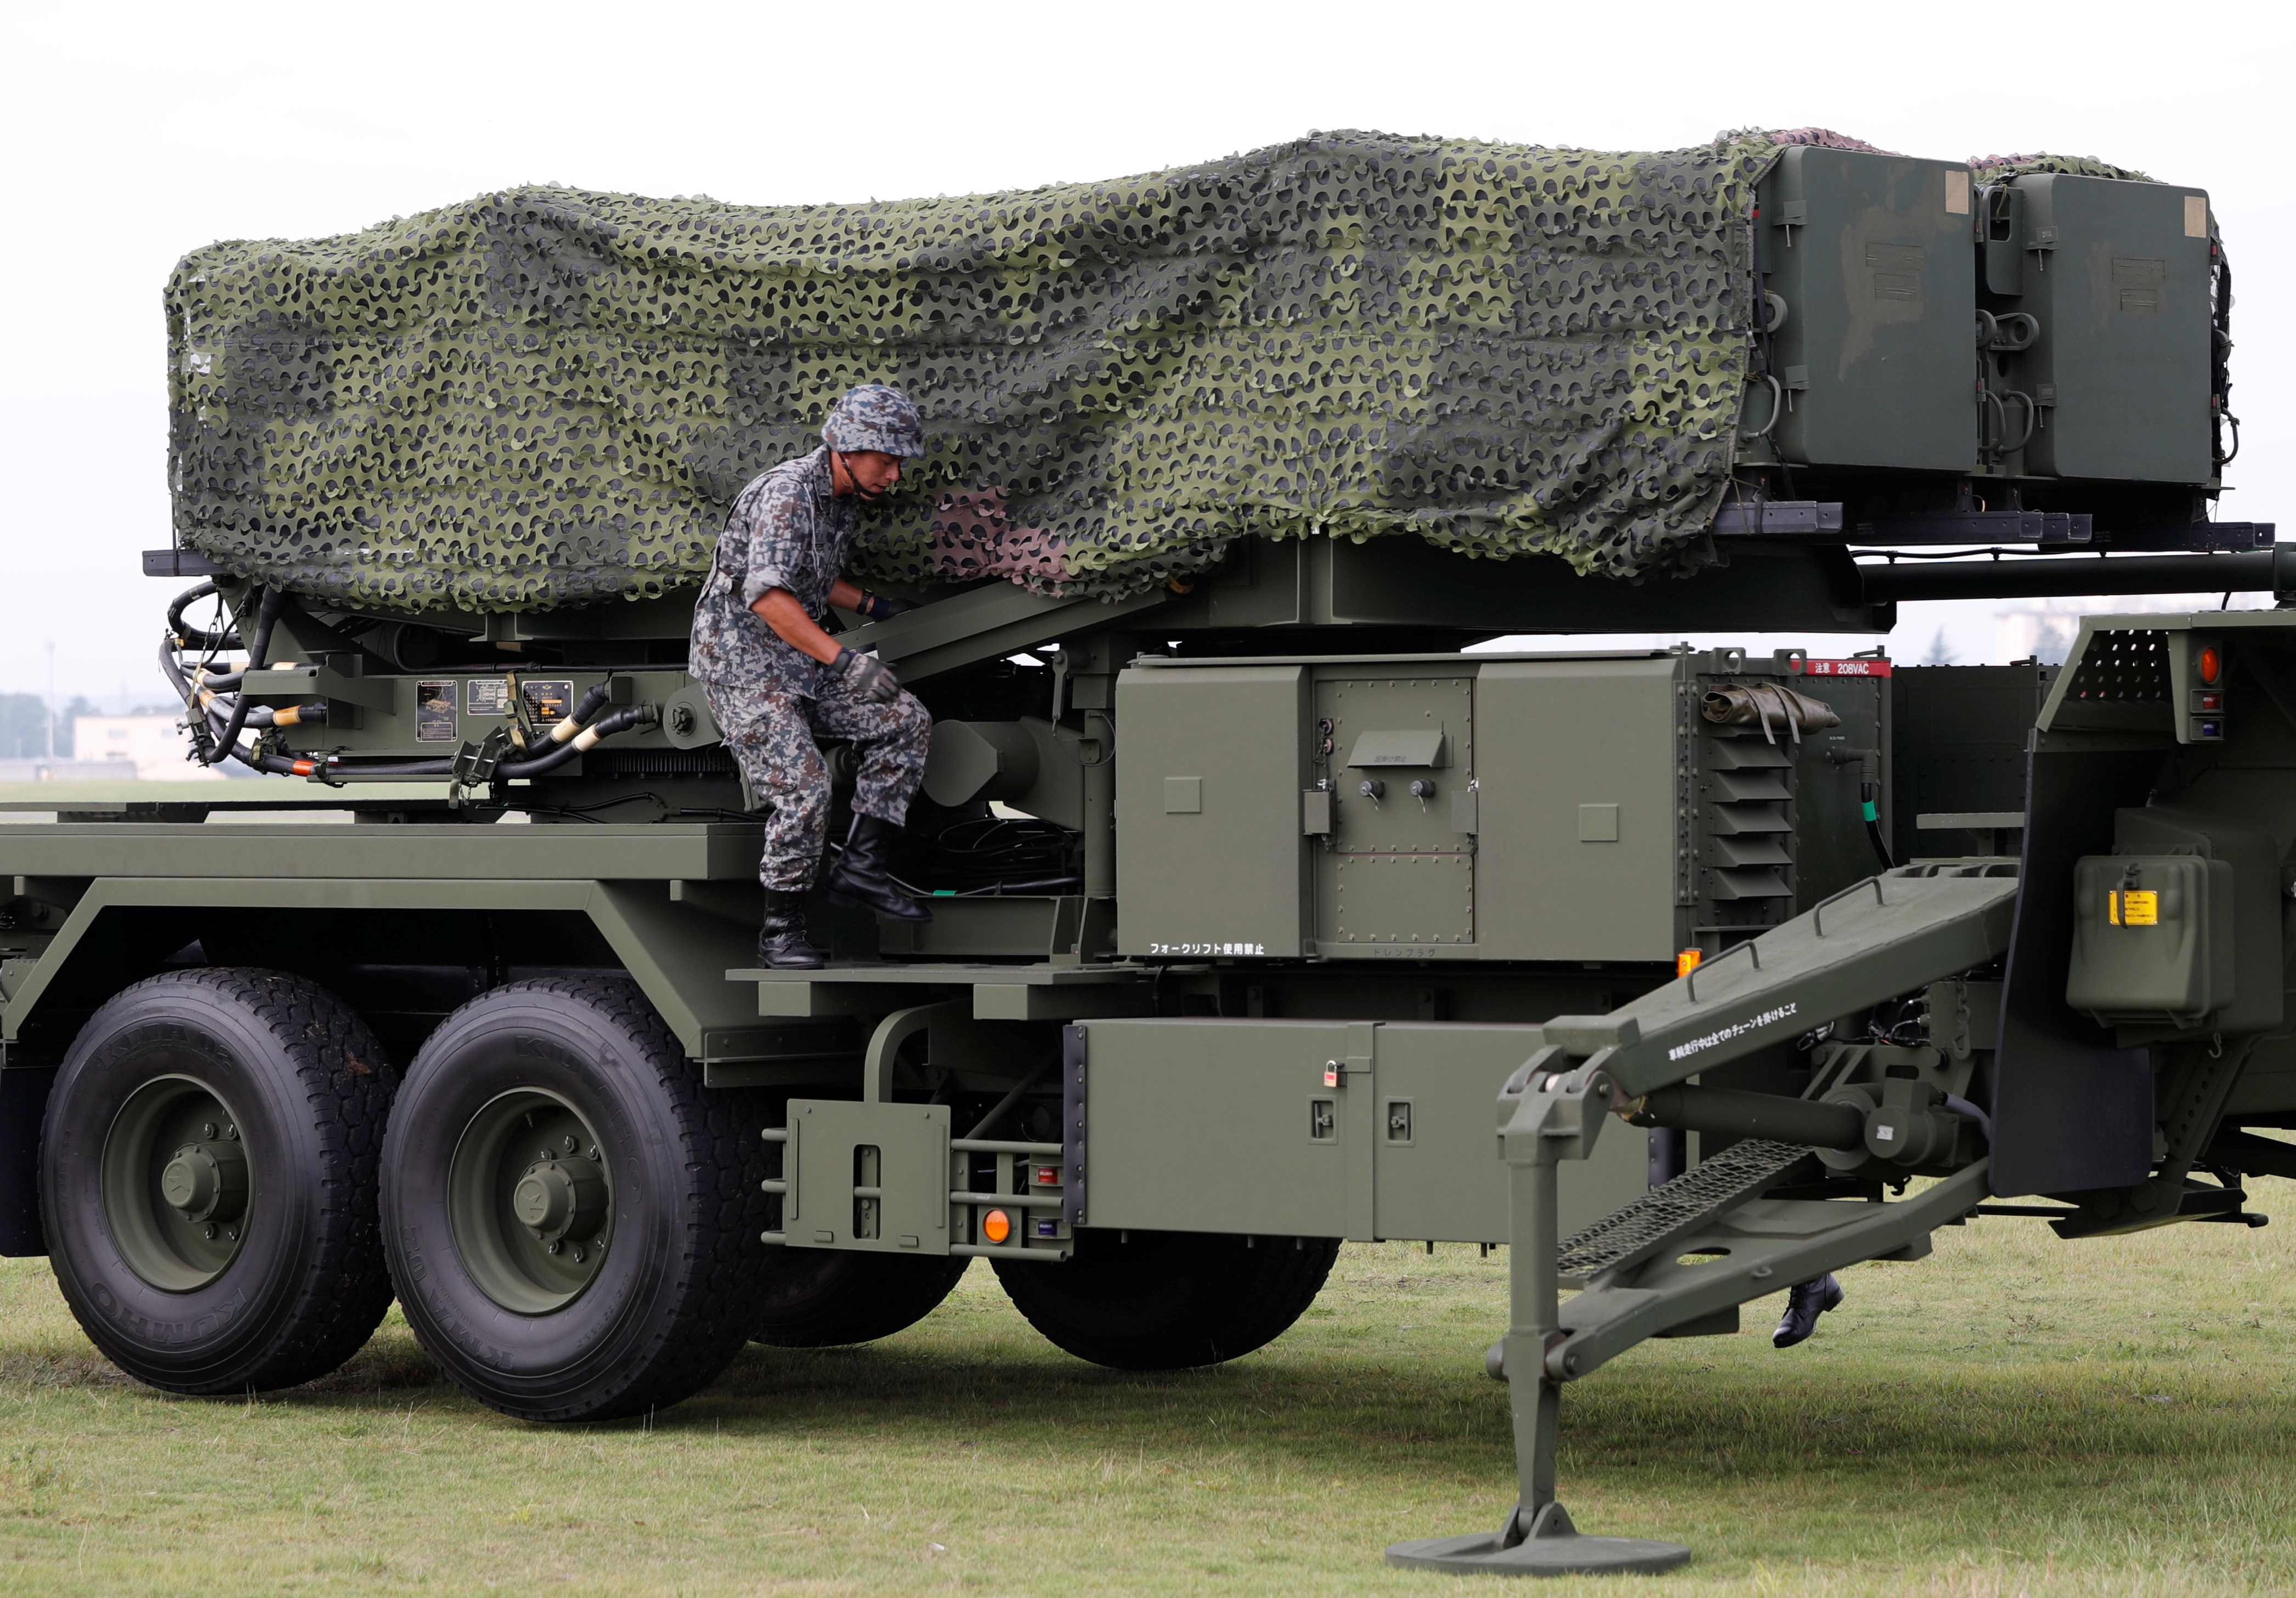 A Japan Self-Defense Forces (JSDF) soldier takes part in a drill to mobilise their Patriot Advanced Capability-3 (PAC-3) missile unit in response to a recent missile launch by North Korea, at U.S. Air Force Yokota Air Base in Fussa on the outskirts of Tokyo, Japan on Aug. 29, 2017. (REUTERS/Issei Kato)